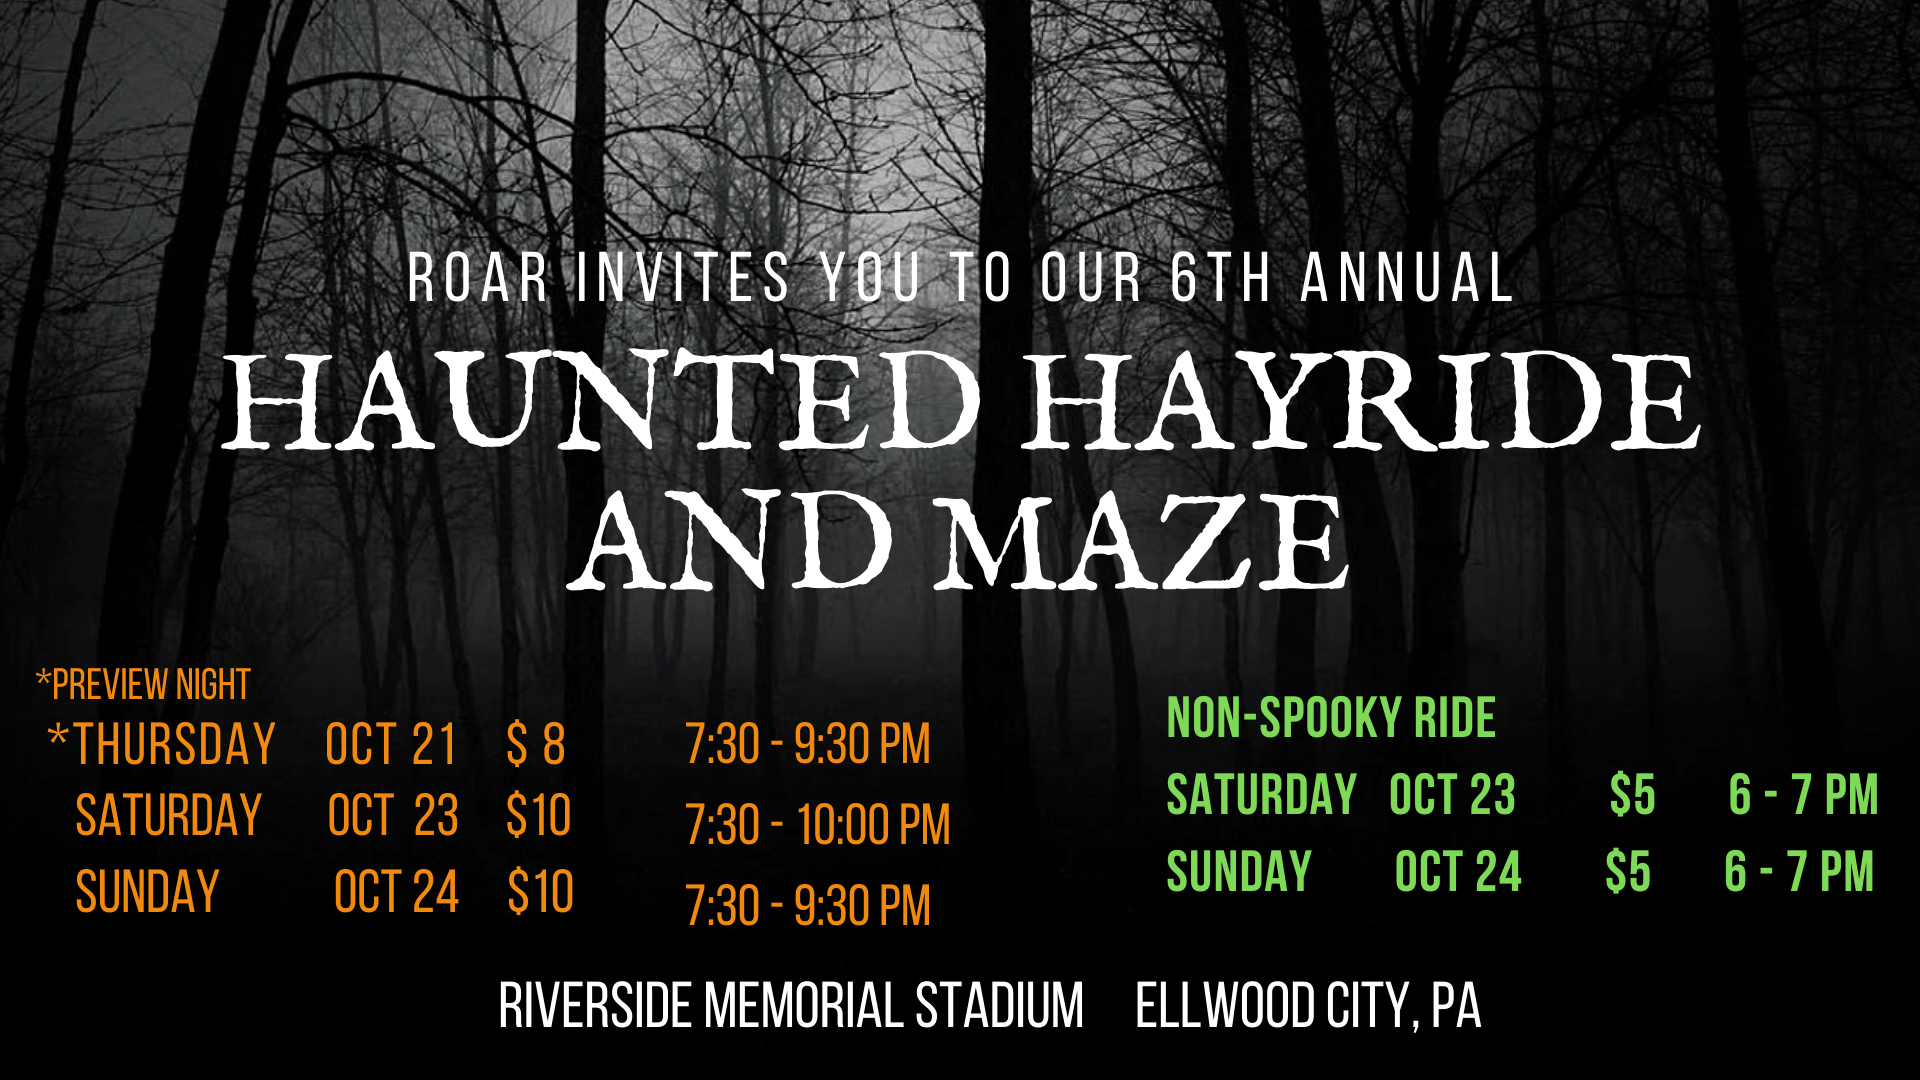 ROAR Hayride event cover (7)